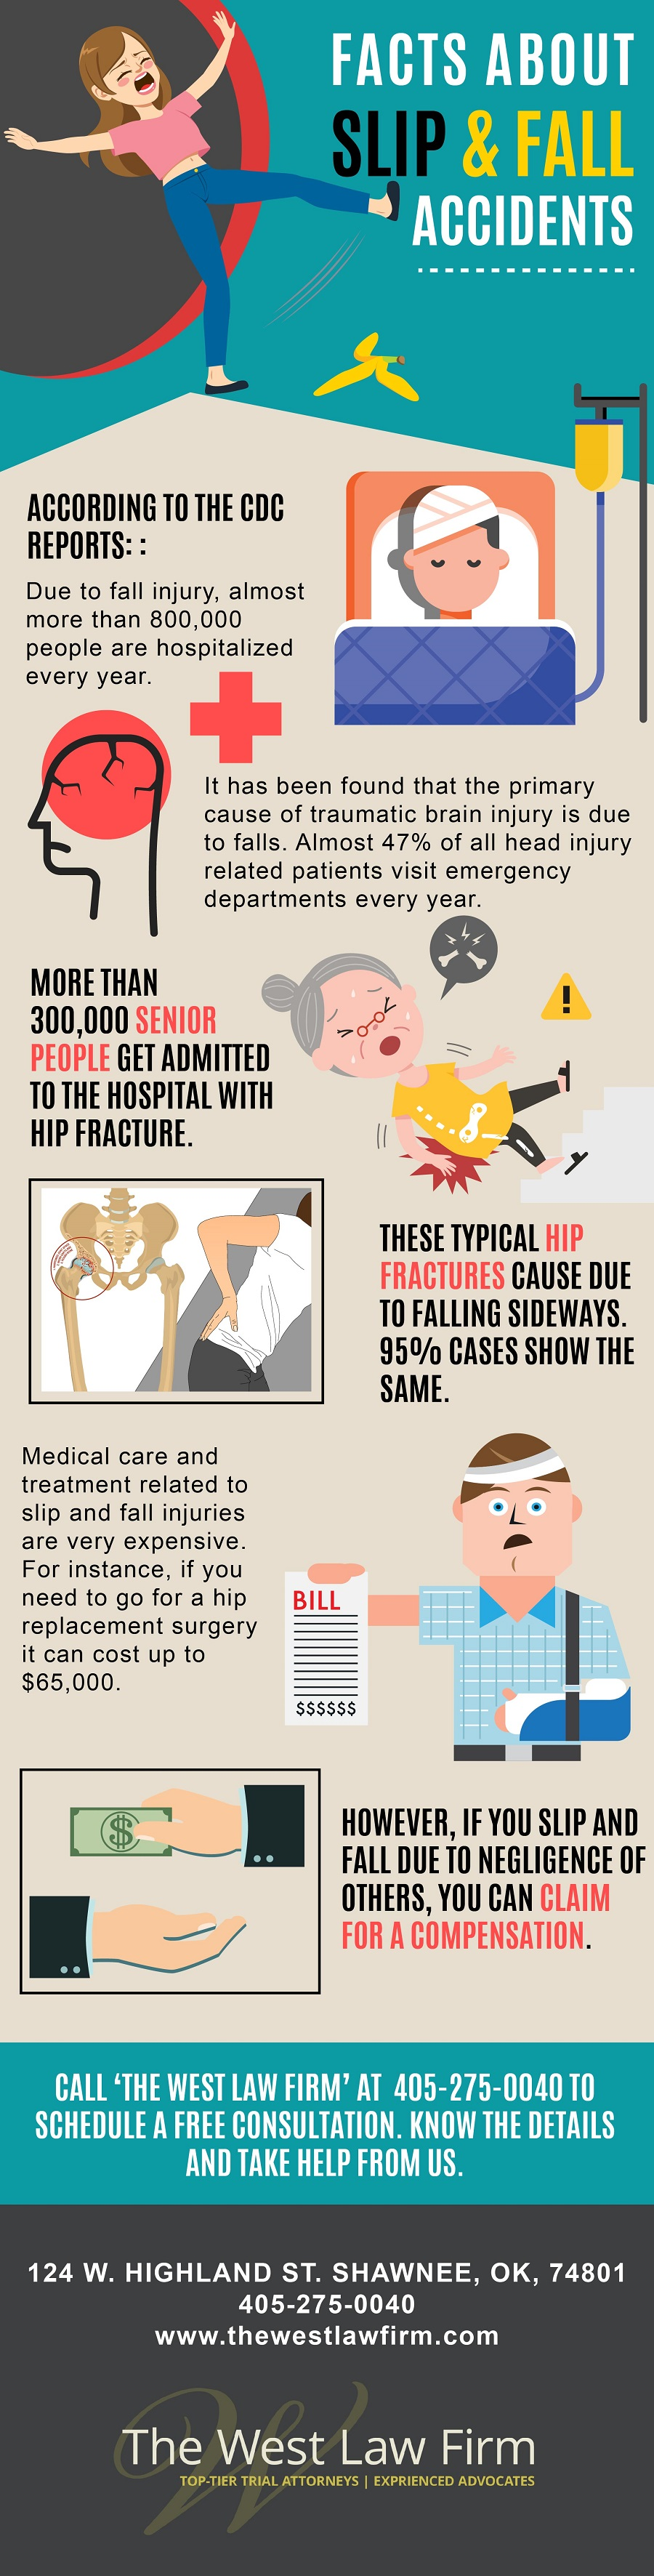 Facts About Slip & Fall Accidents